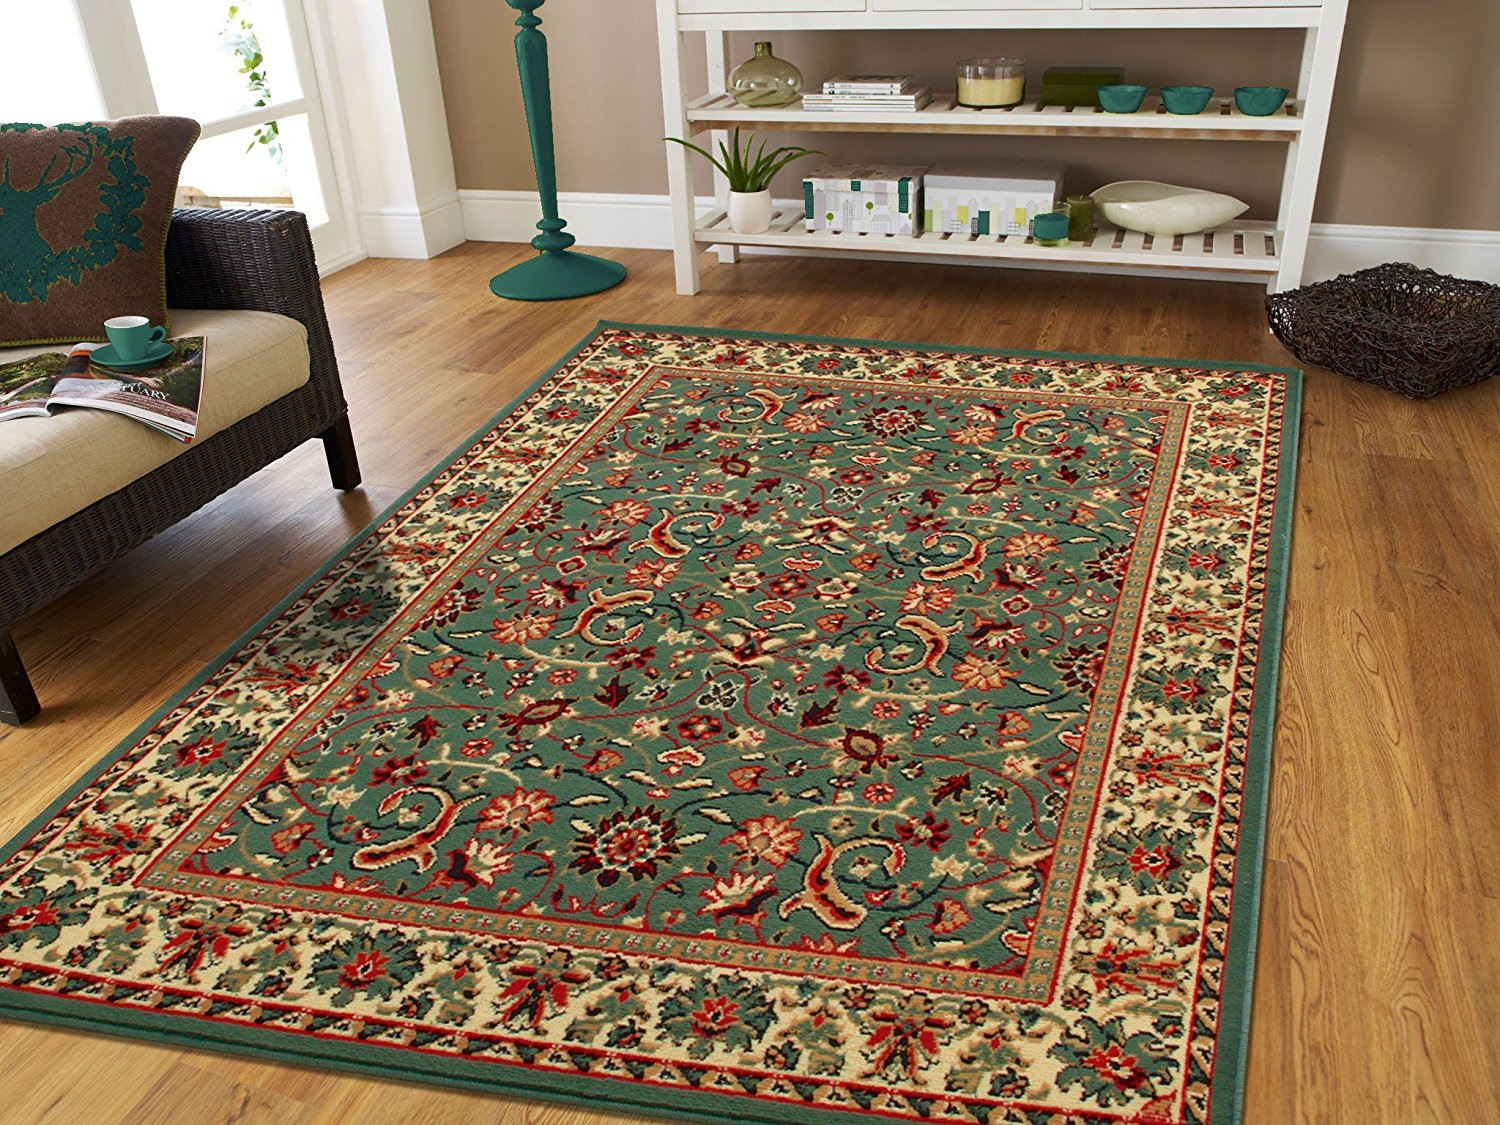 persian rug in a room